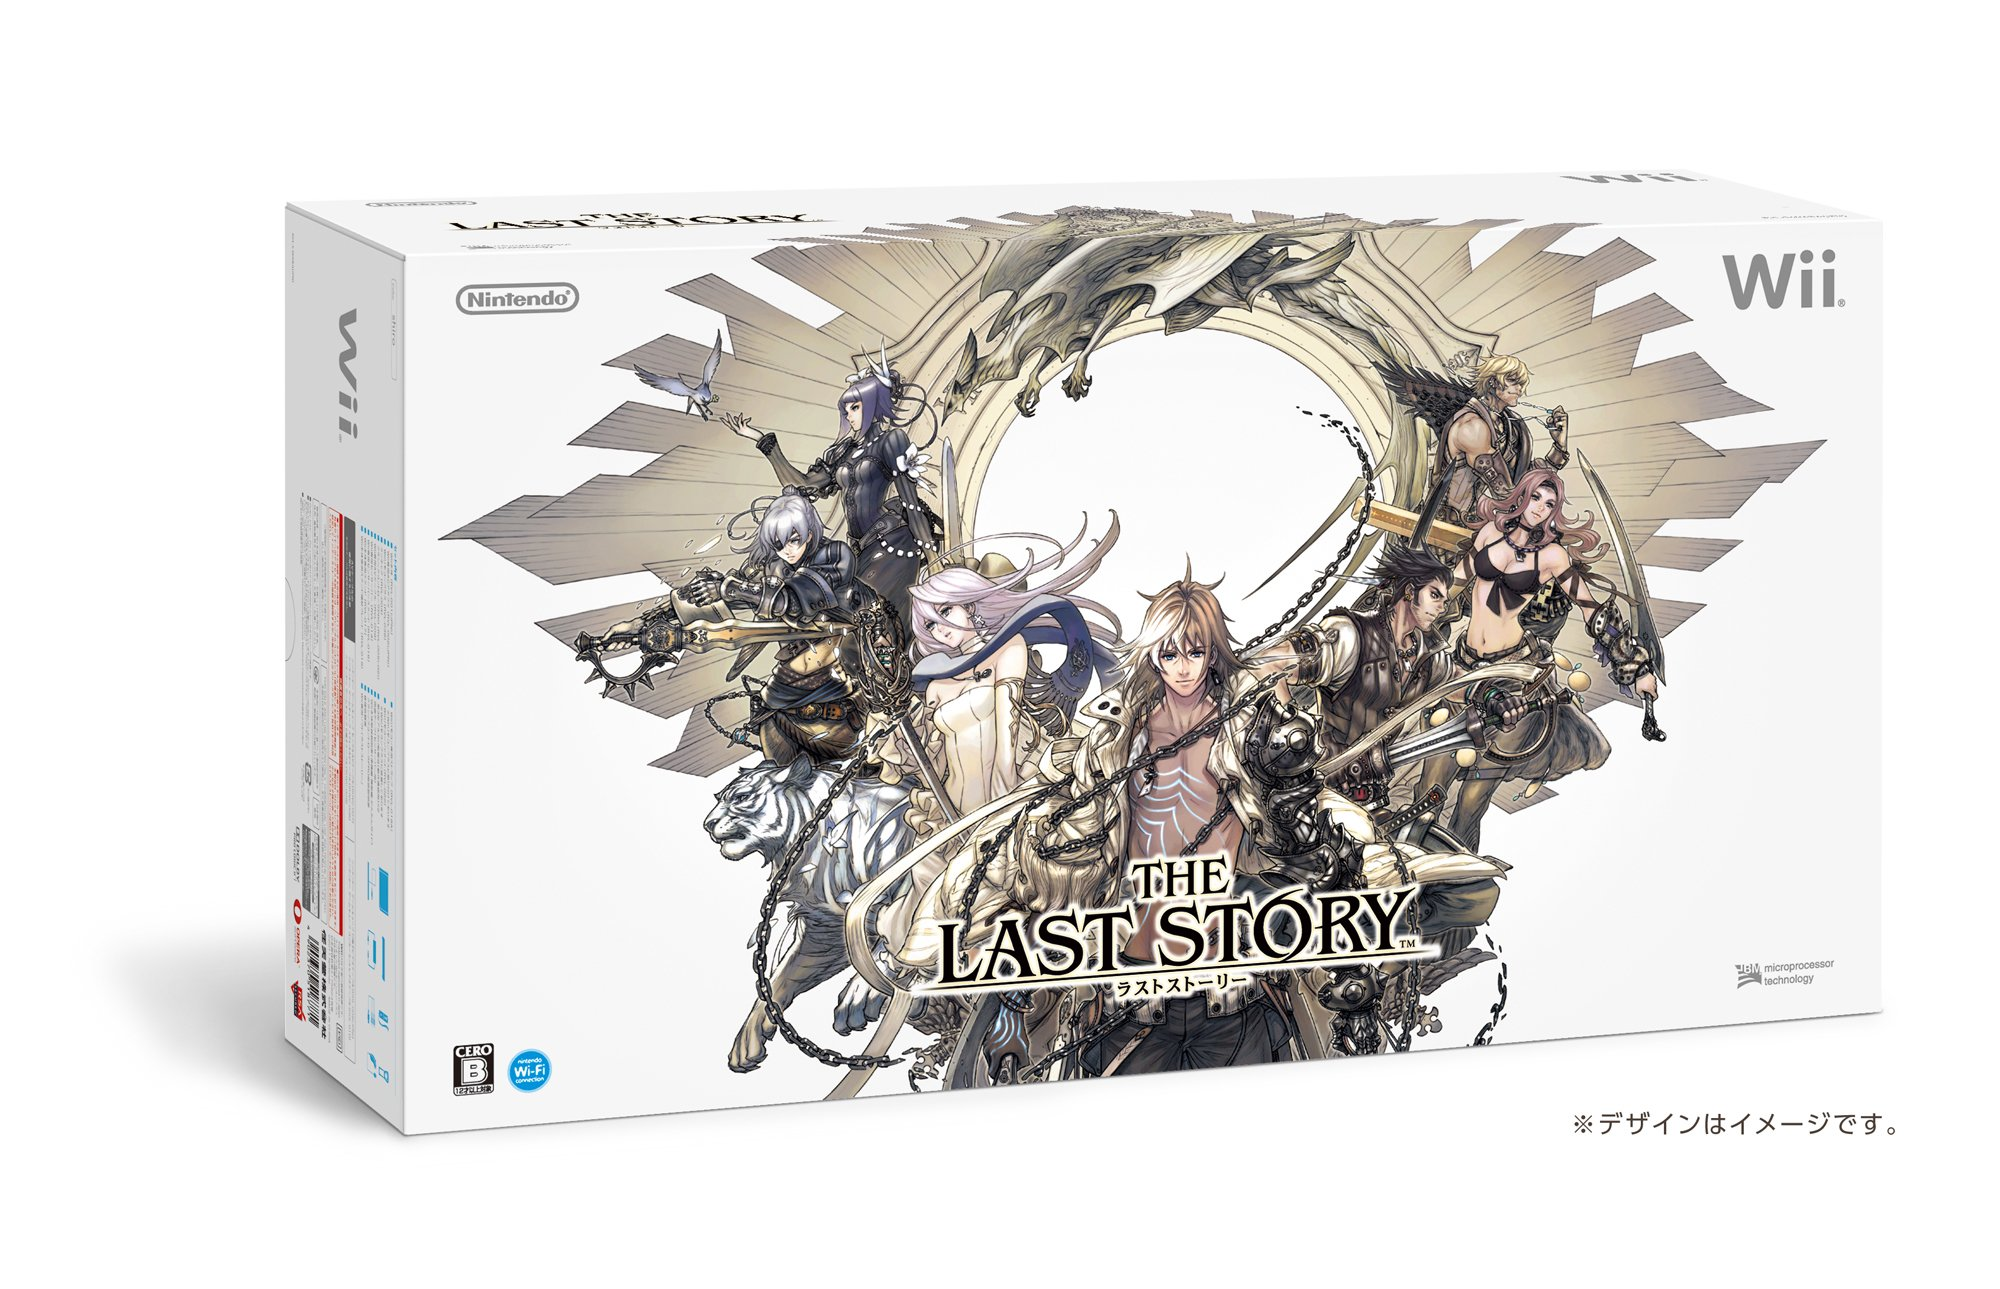 The Last Story Special Pack Body Wii (Body Wii, Classic Controller Pro, with Wii Software ''The Last Story'') [End] Production Manufacturer